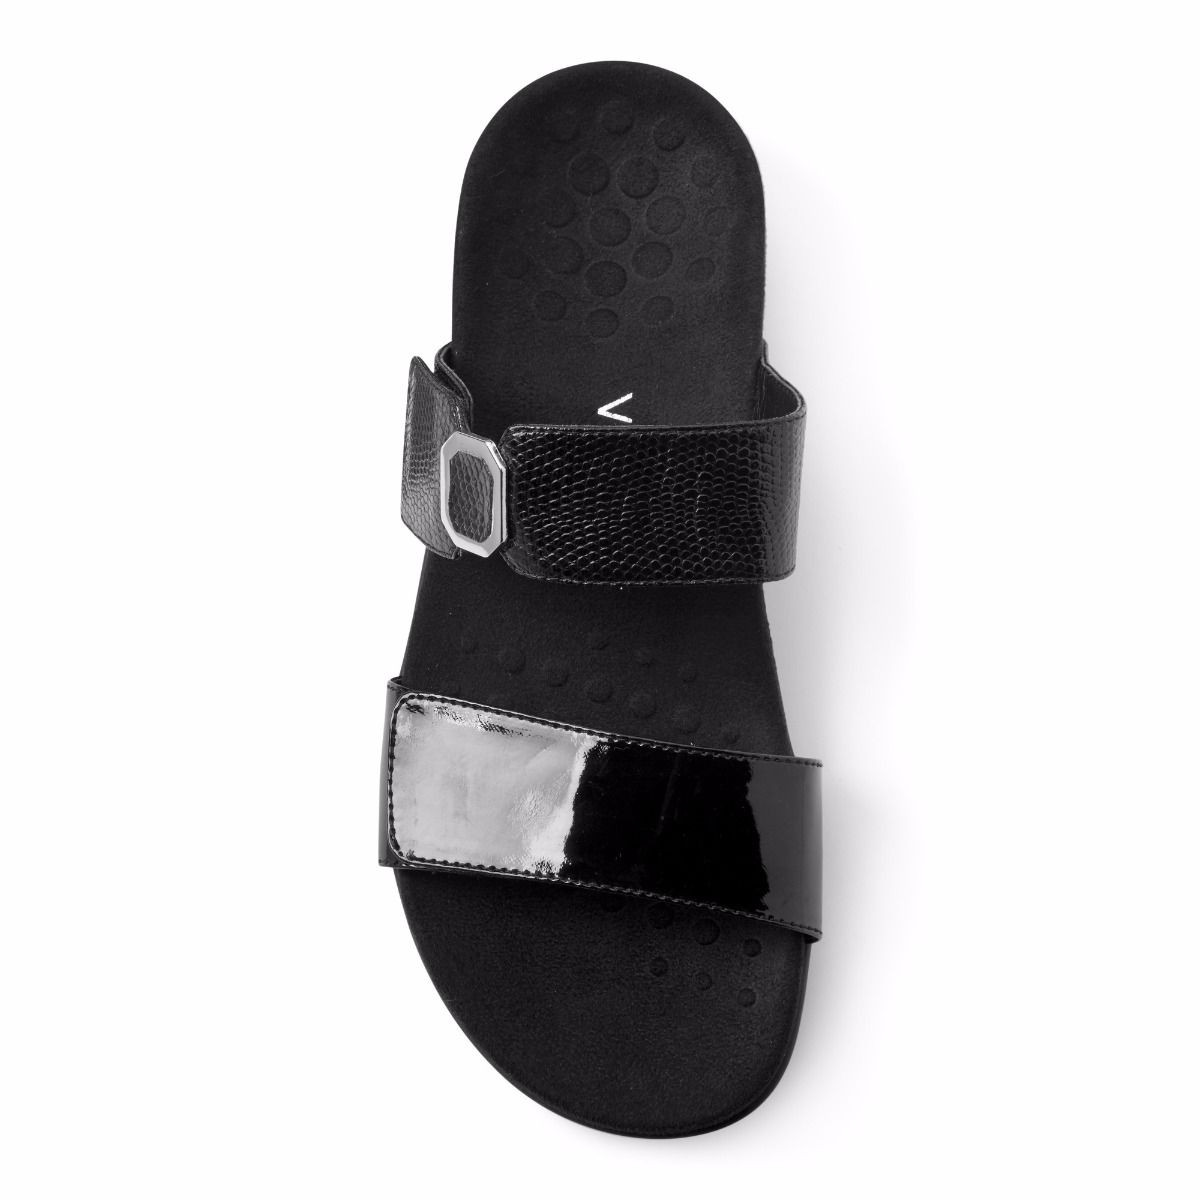 8637666f48fd Vionic Women s Camilla Slide Black Patent. Larger   More Photos